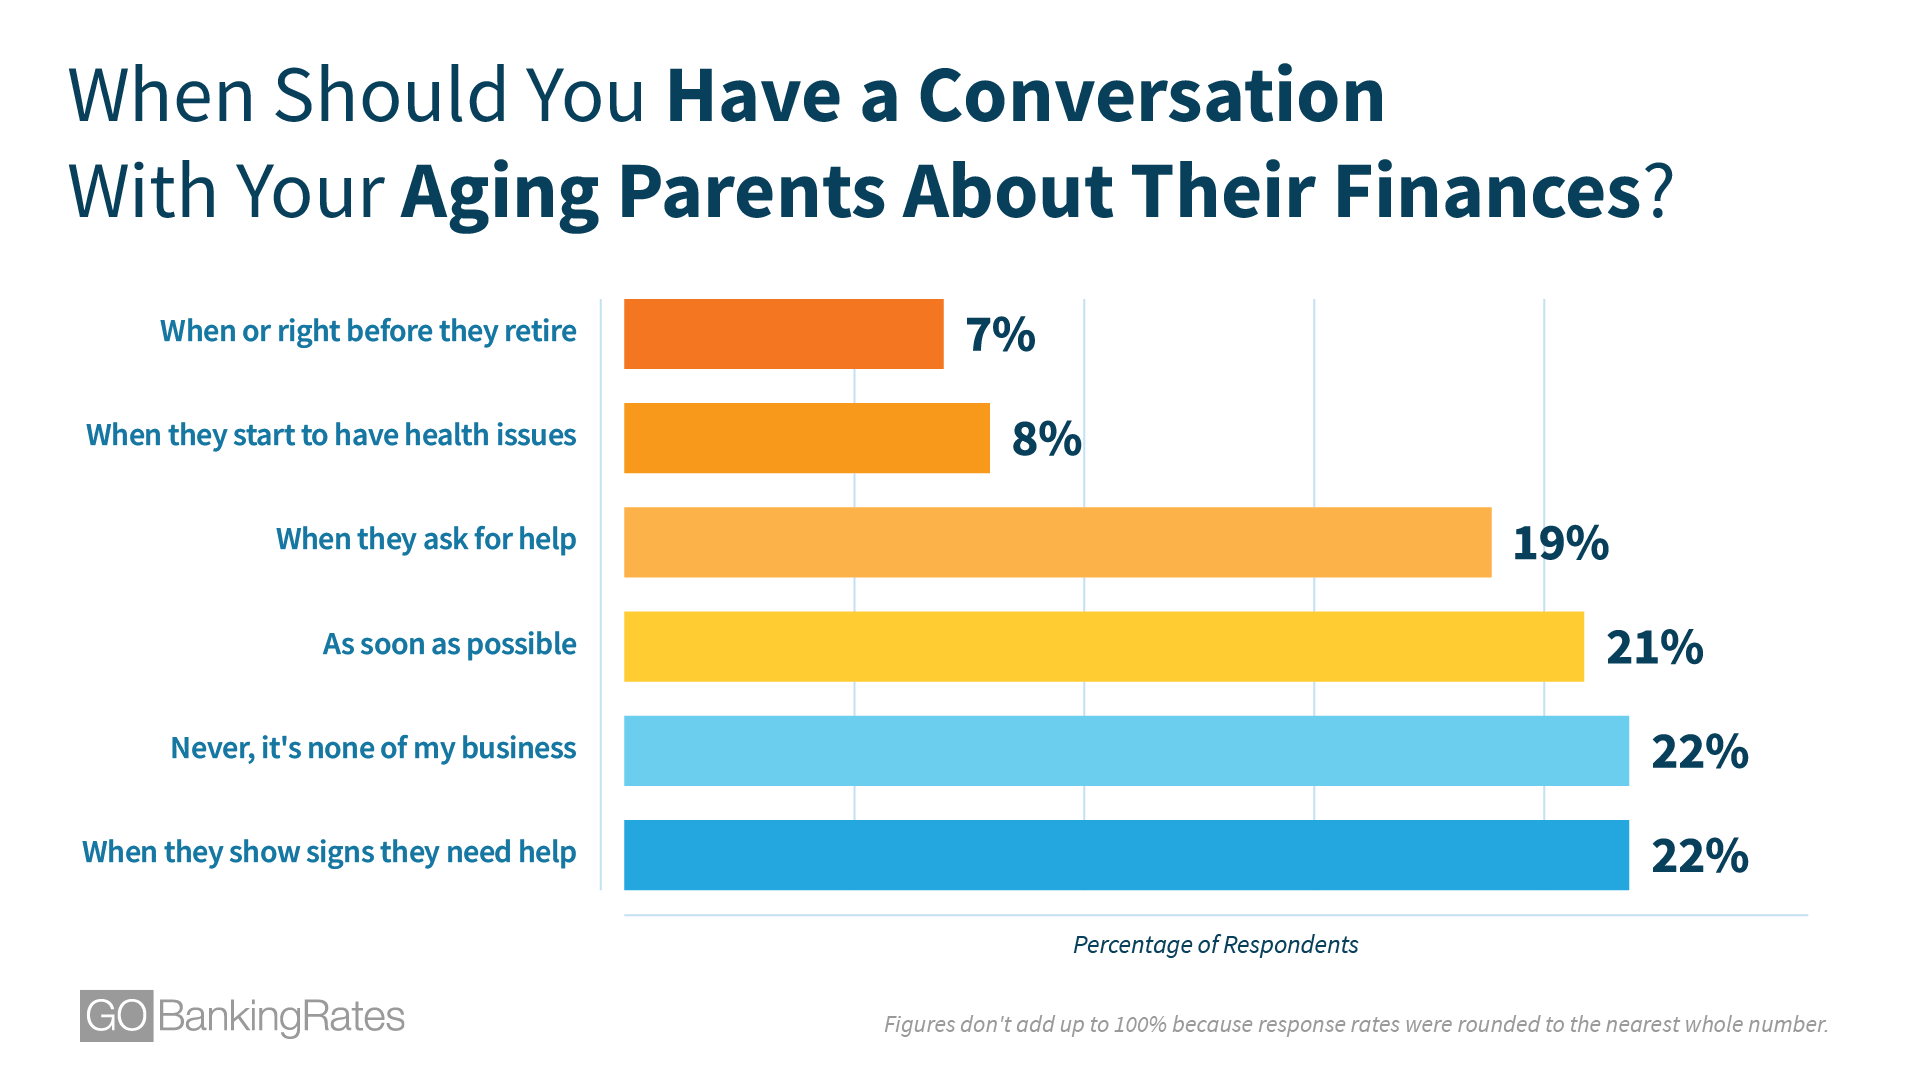 When Should You Have a Conversation With Your Aging Parents About Their Finances?